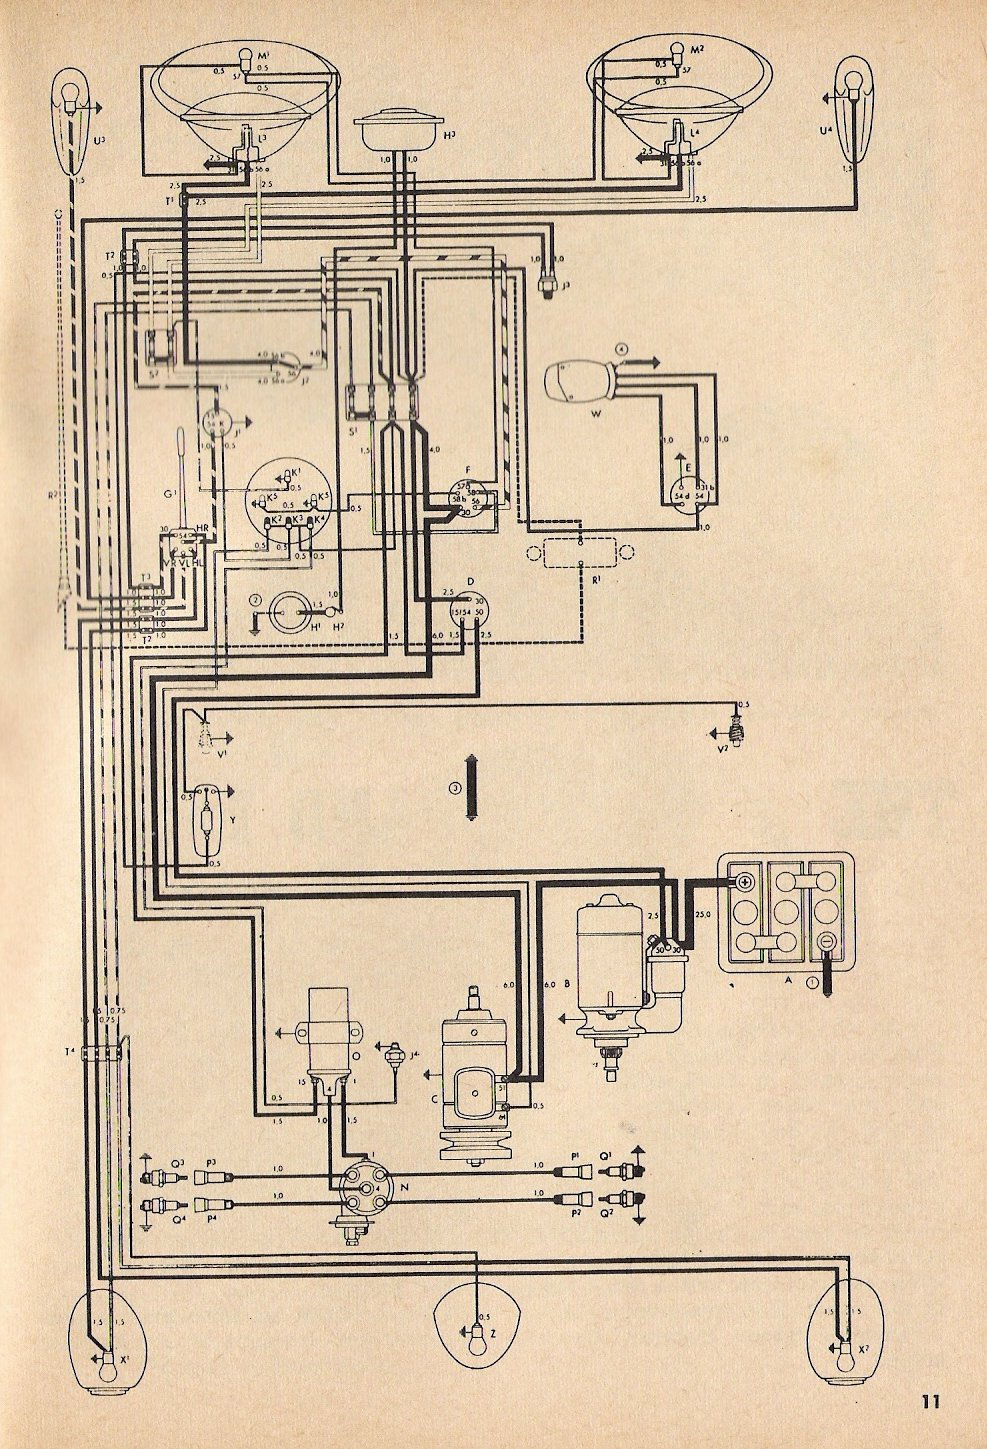 Type 1 Wiring Diagrams Vintage Vw Diagram